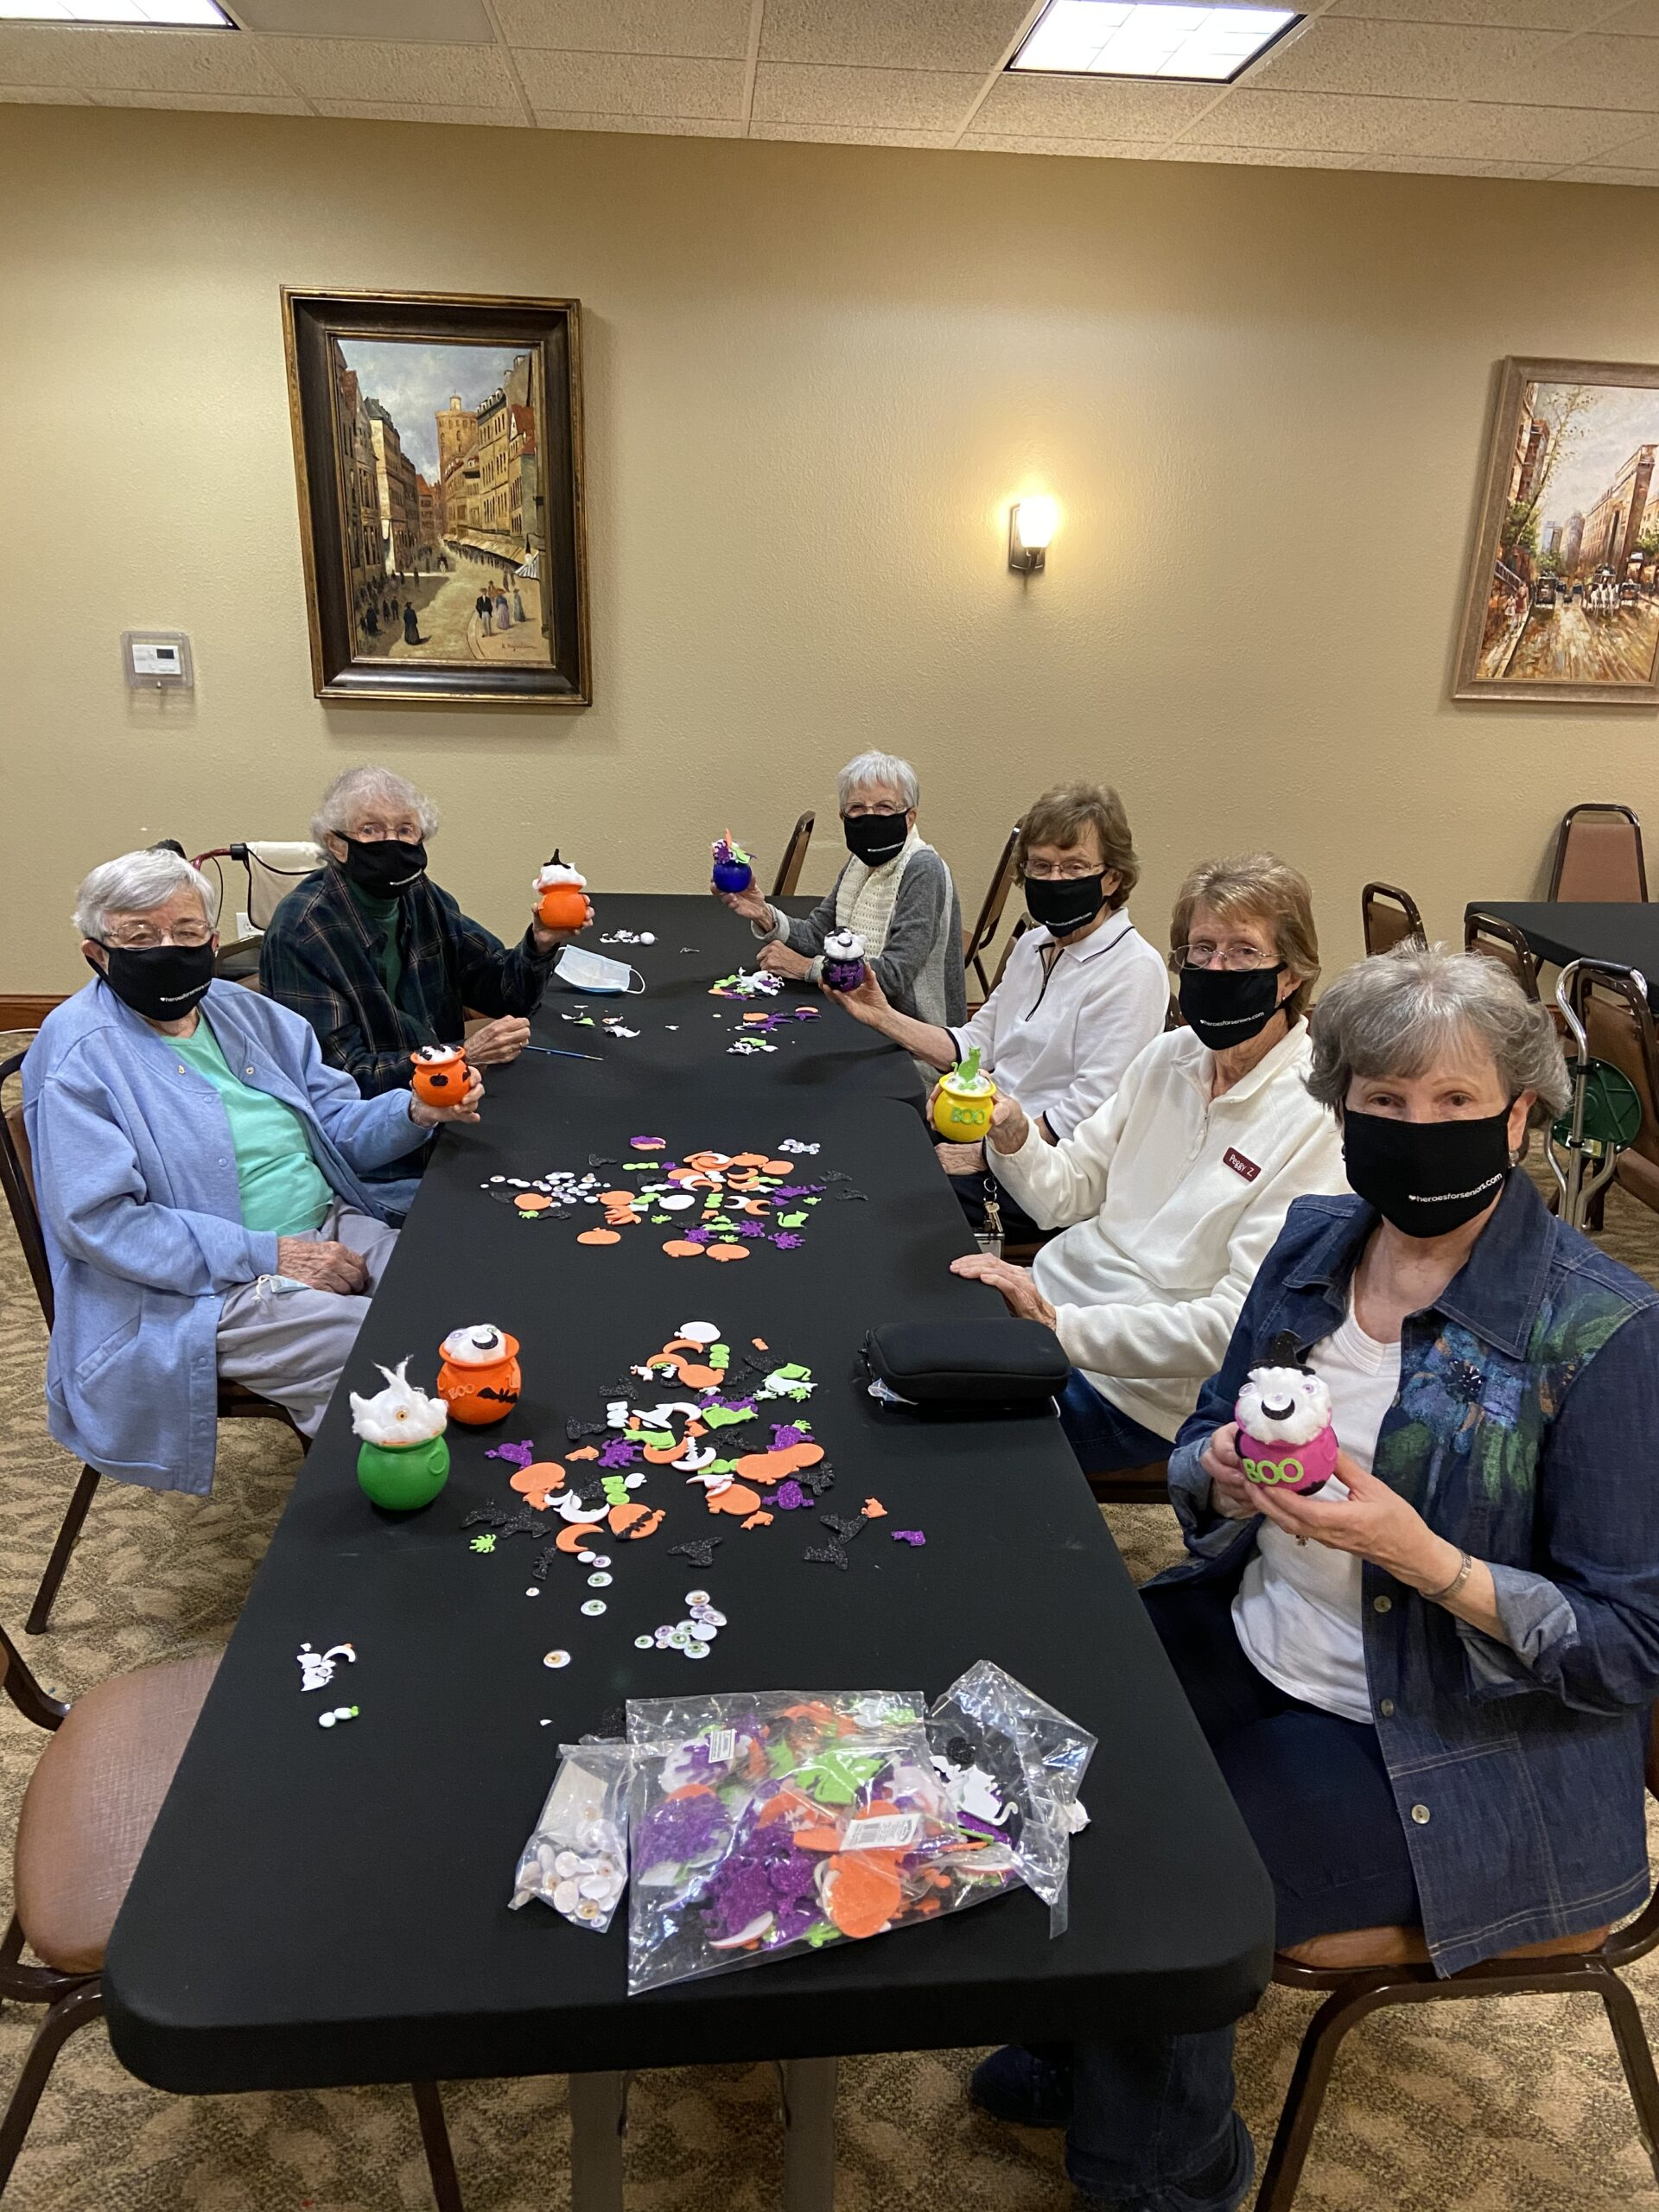 Residents participating in the Halloween craft.